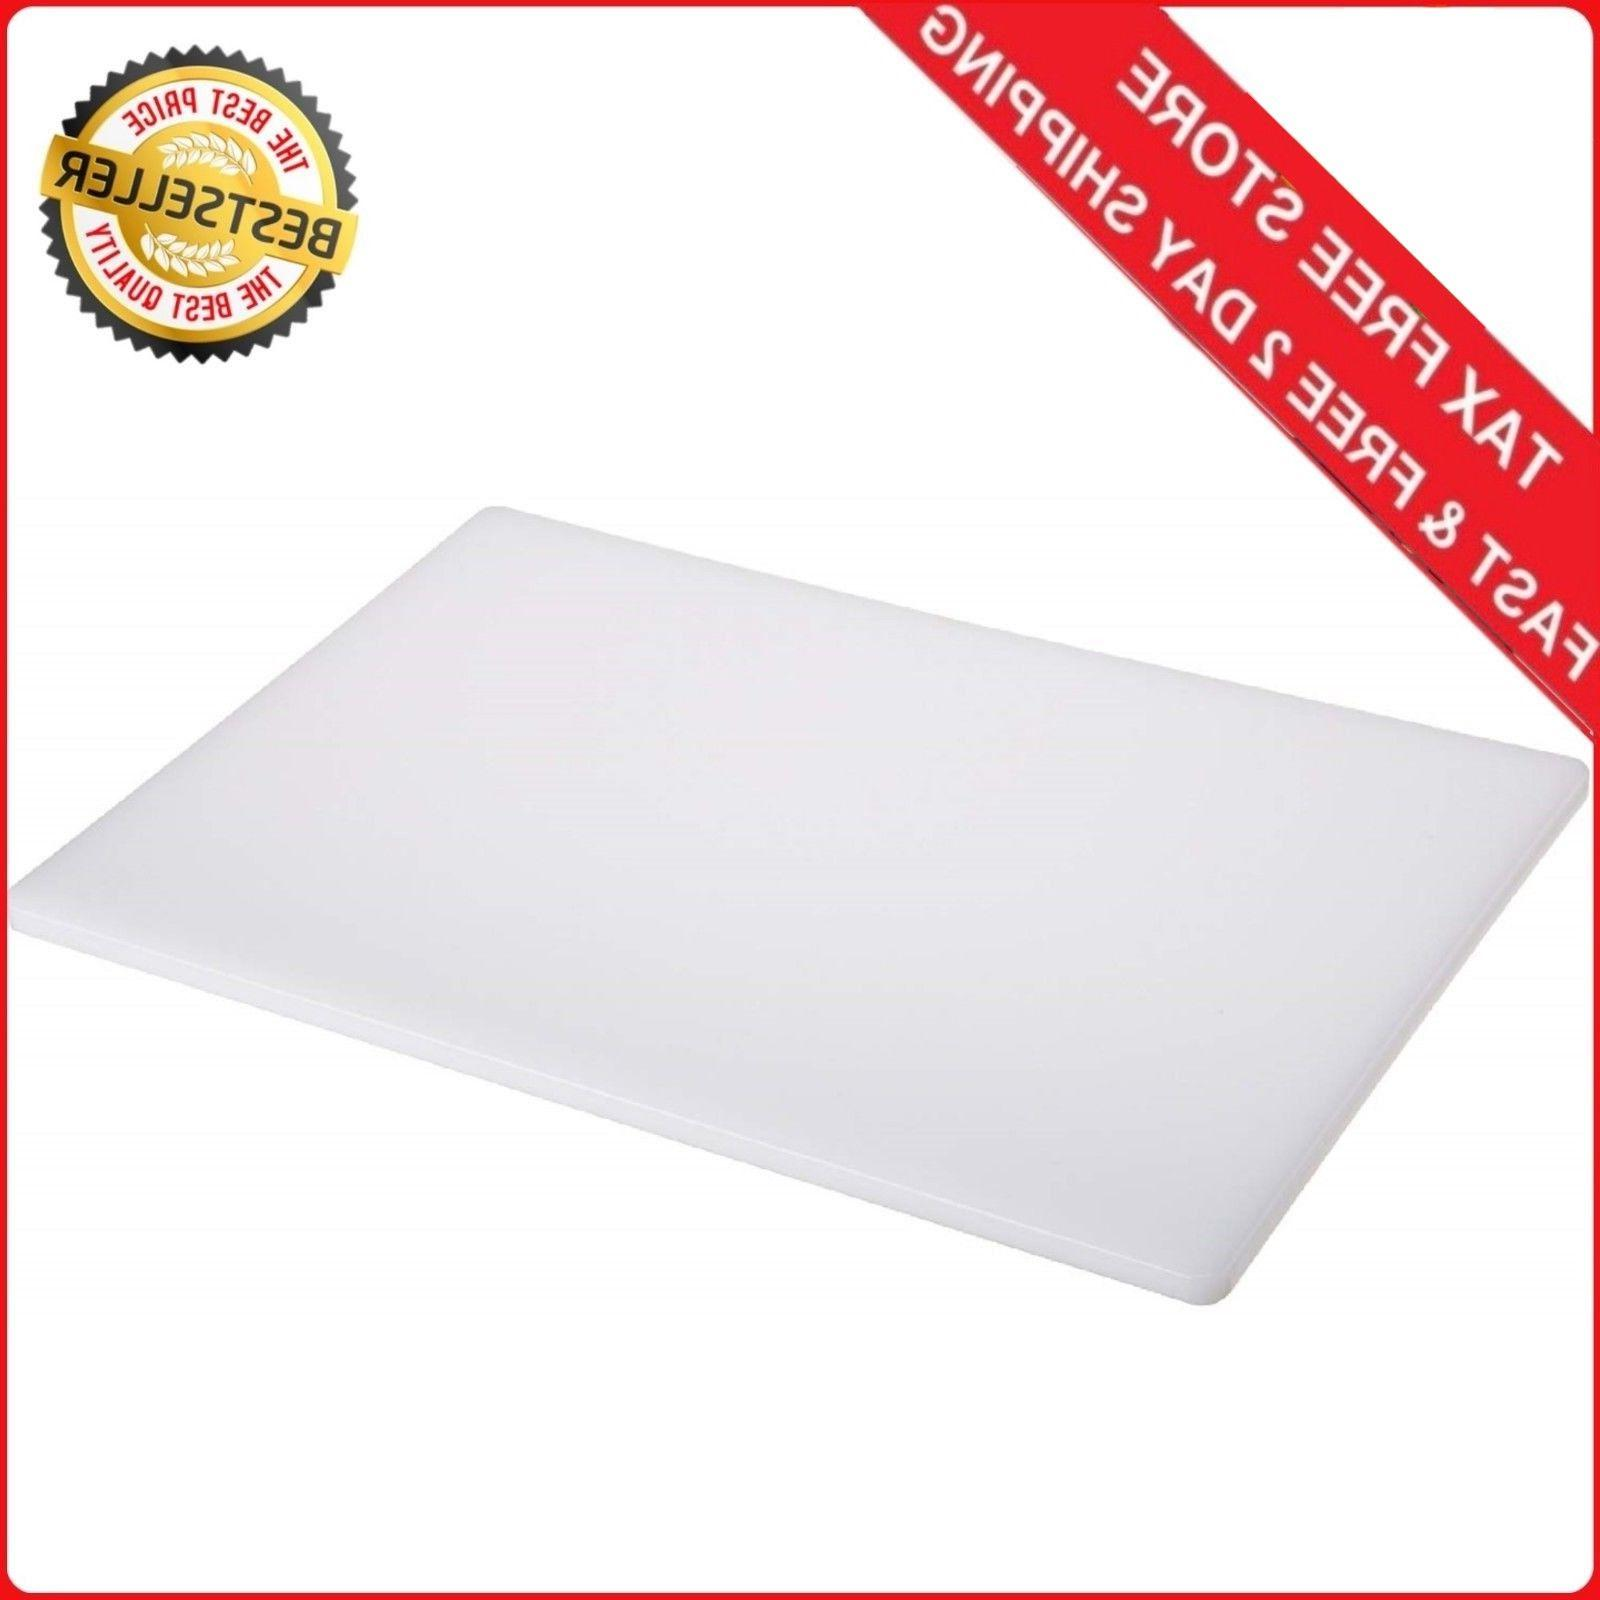 Large x 12 Commercial Plastic Cutting Board NSF